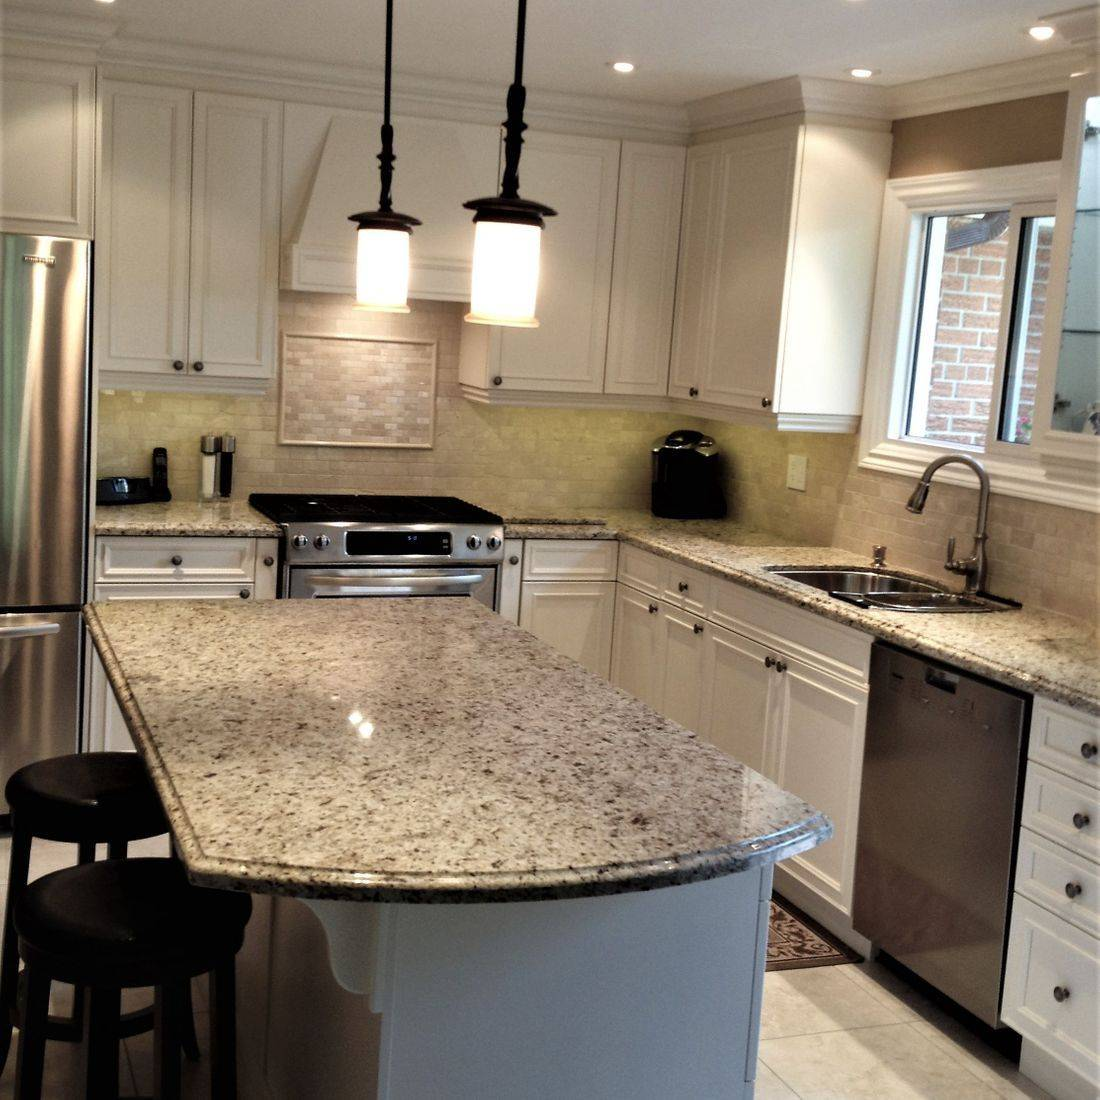 Sibra Kitchens Markham Toronto granite counter white cabinets